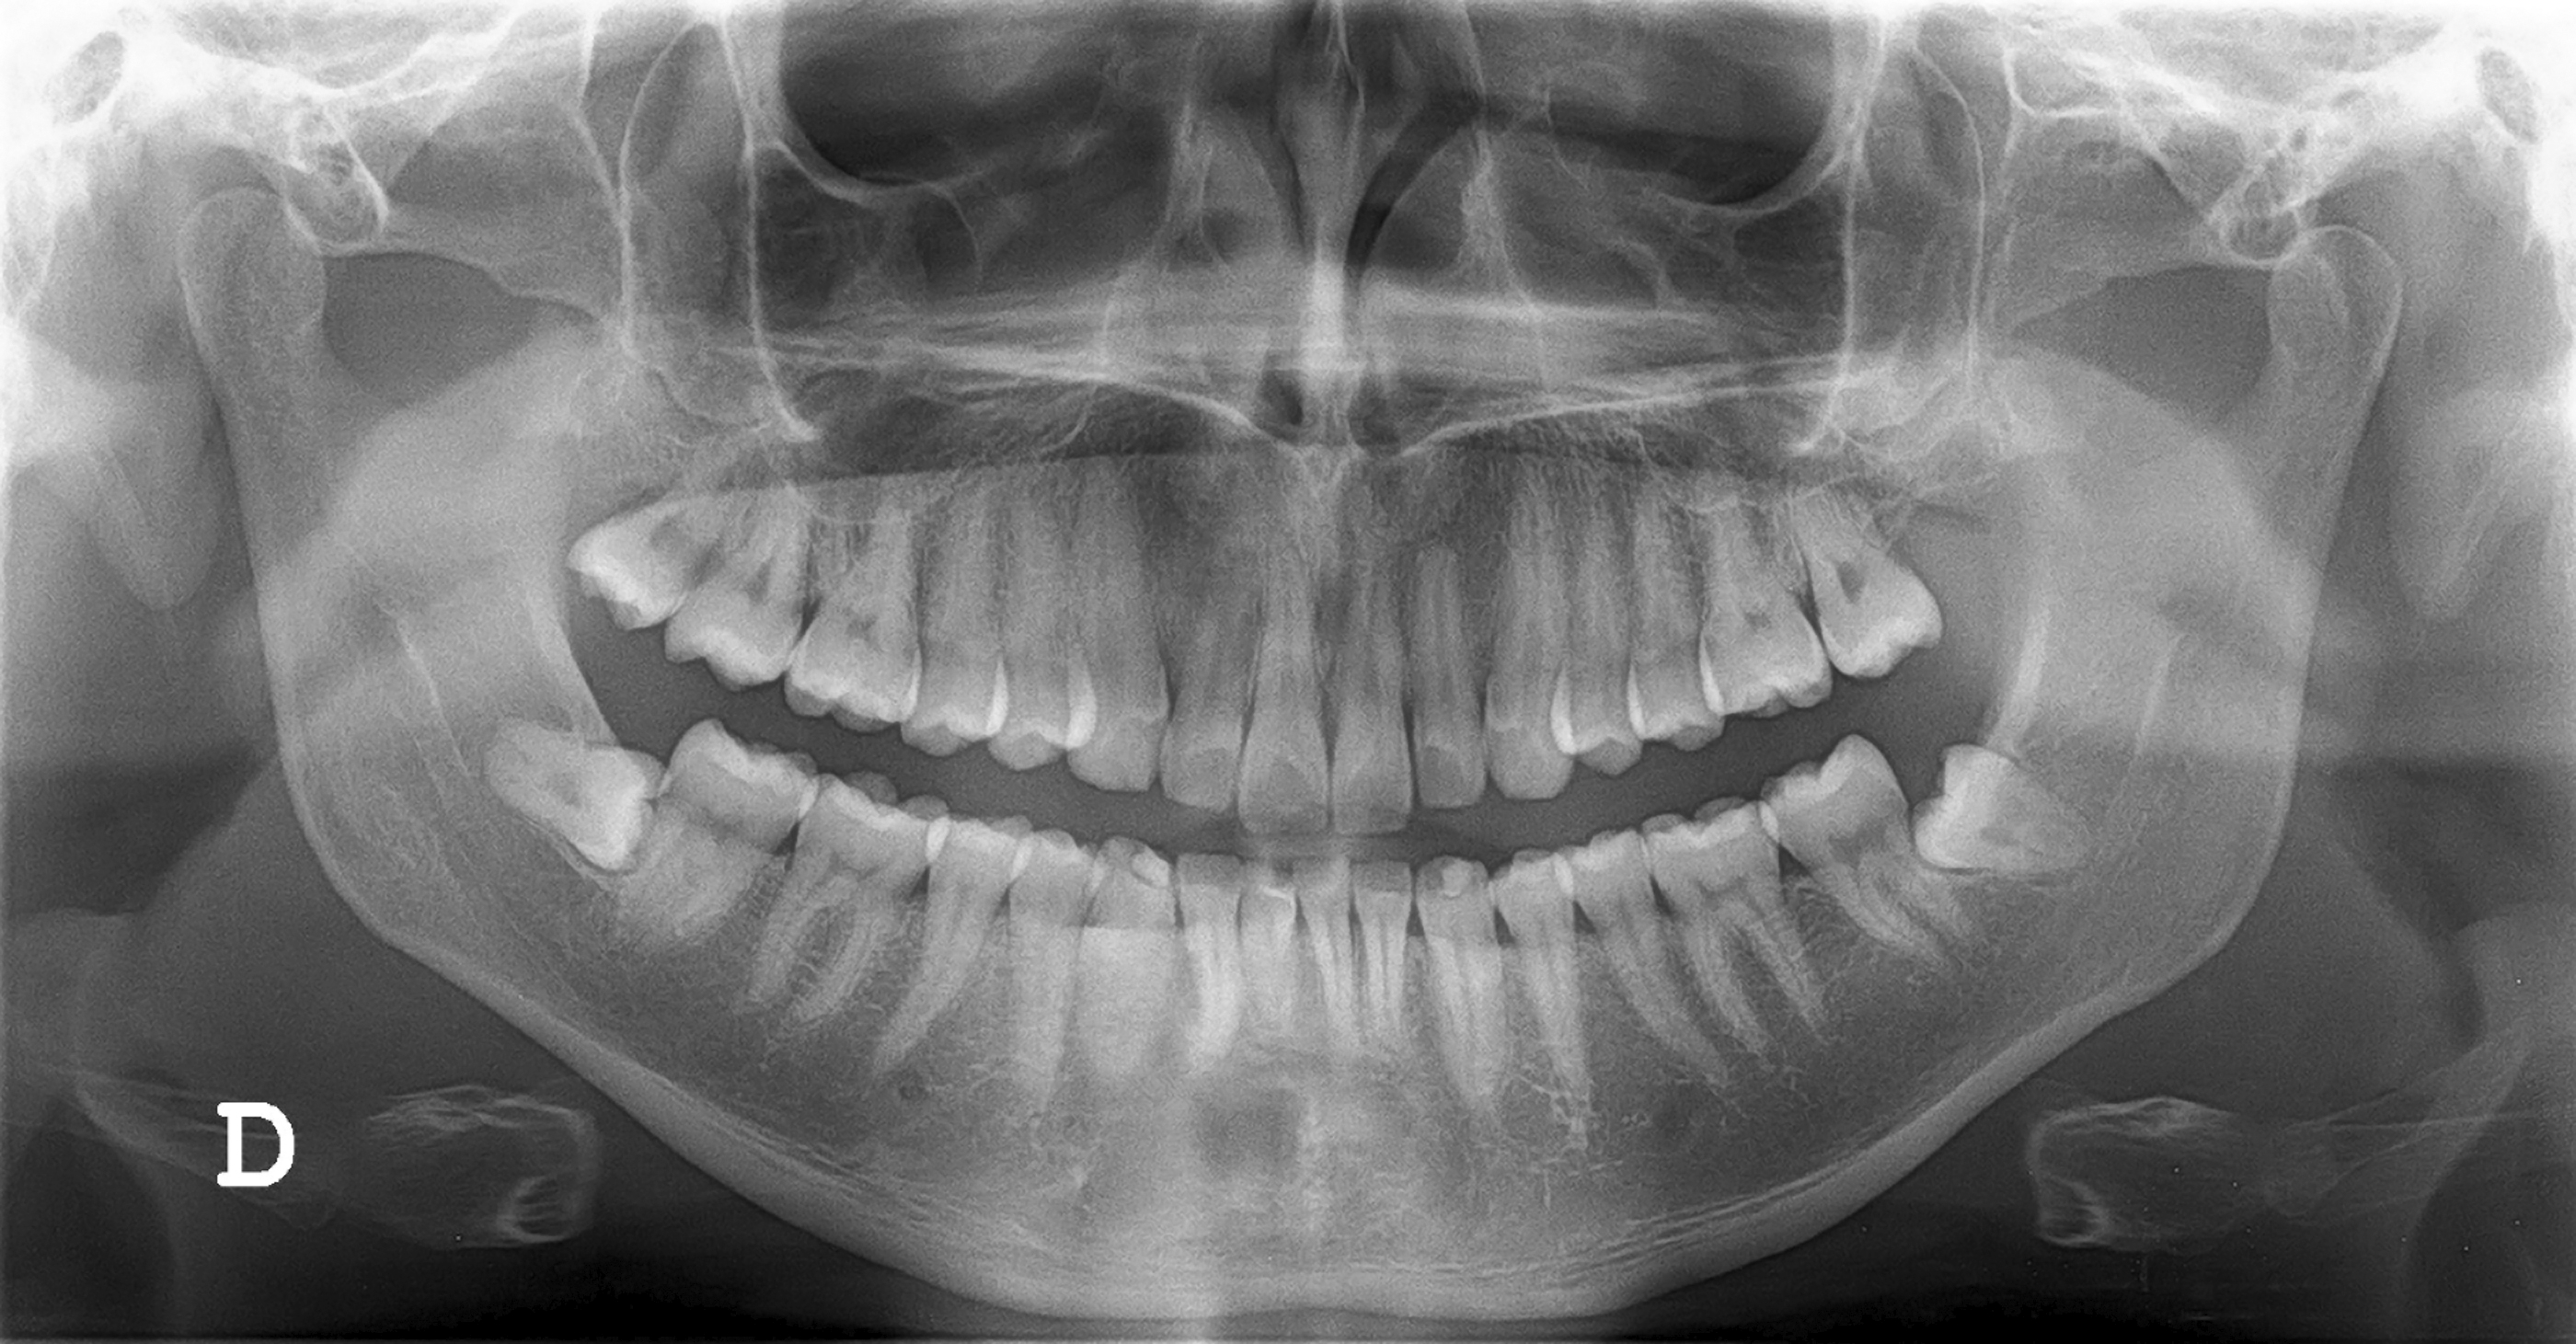 How to Choose an Oral Radiologist How to Choose an Oral Radiologist new images